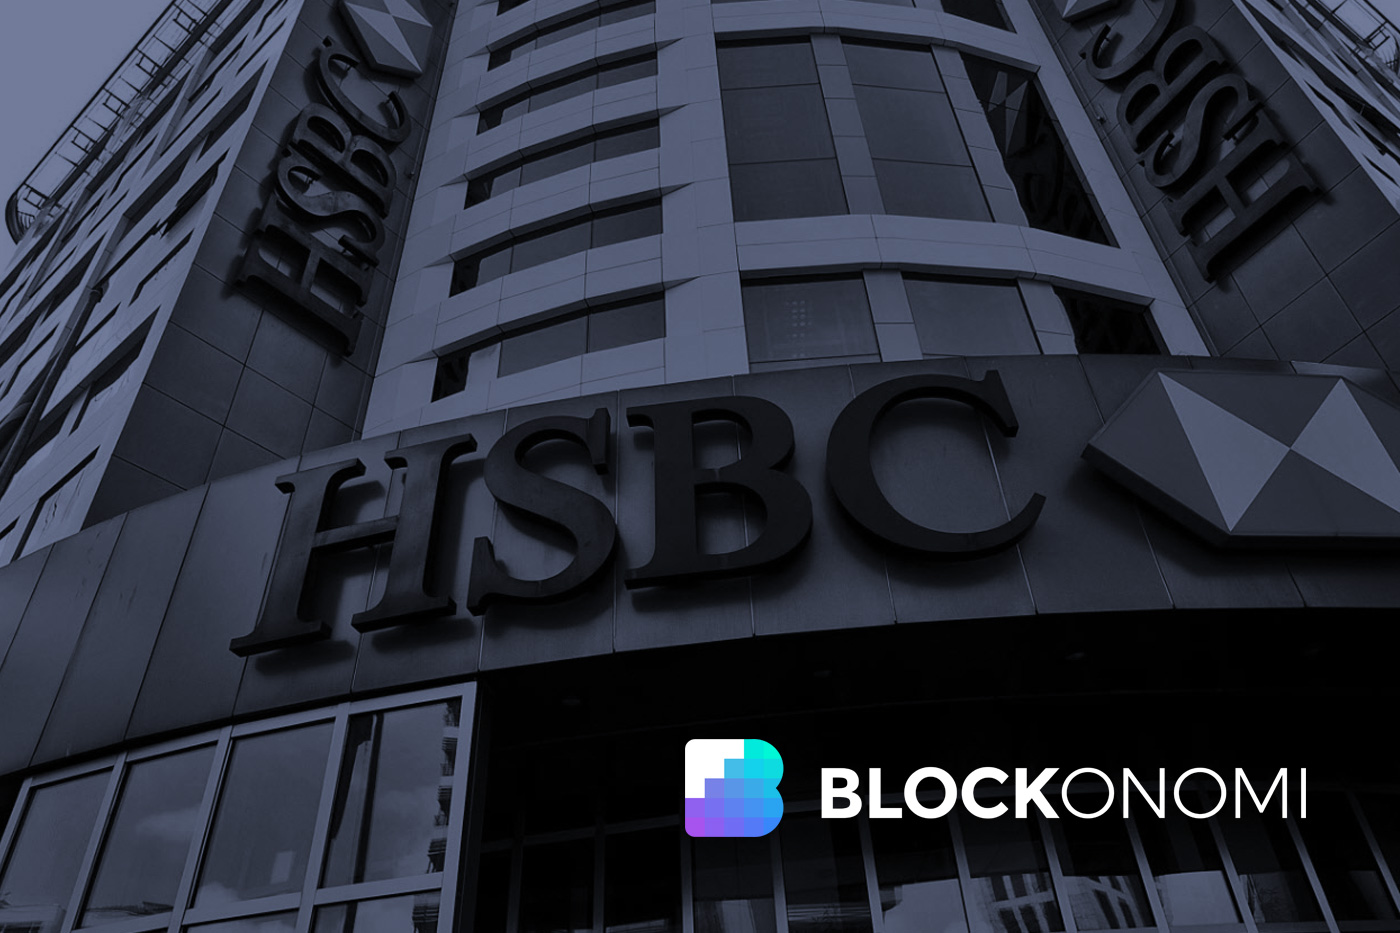 HSBC India Blockchain